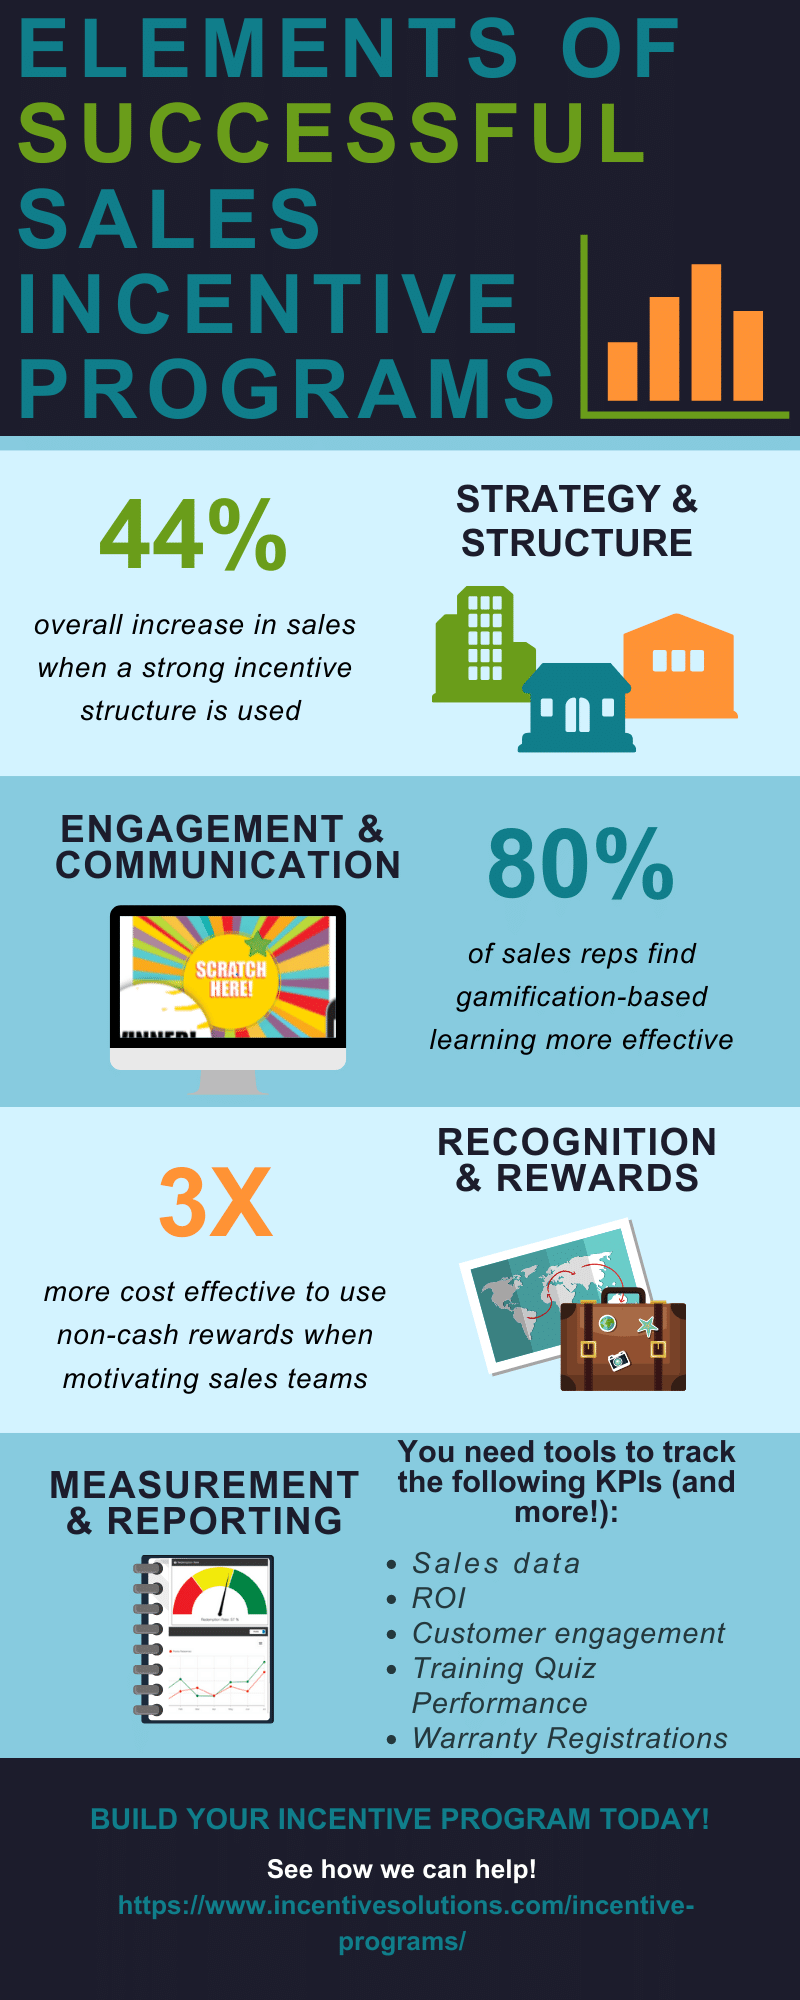 Successful Sales Incentive Programs